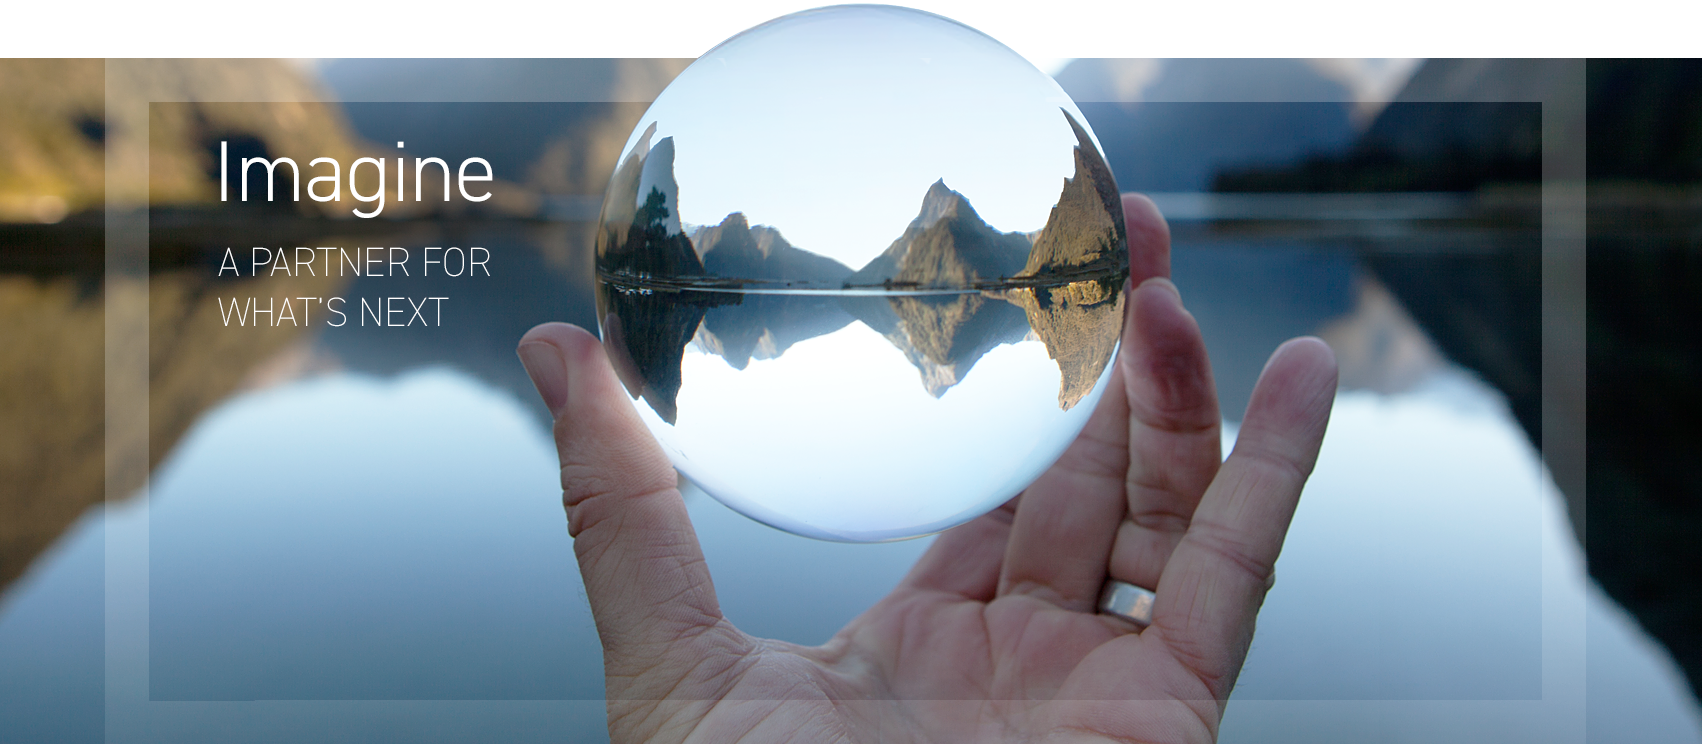 2017 Annual Report Cover-photo of mountains reflecting in sphere